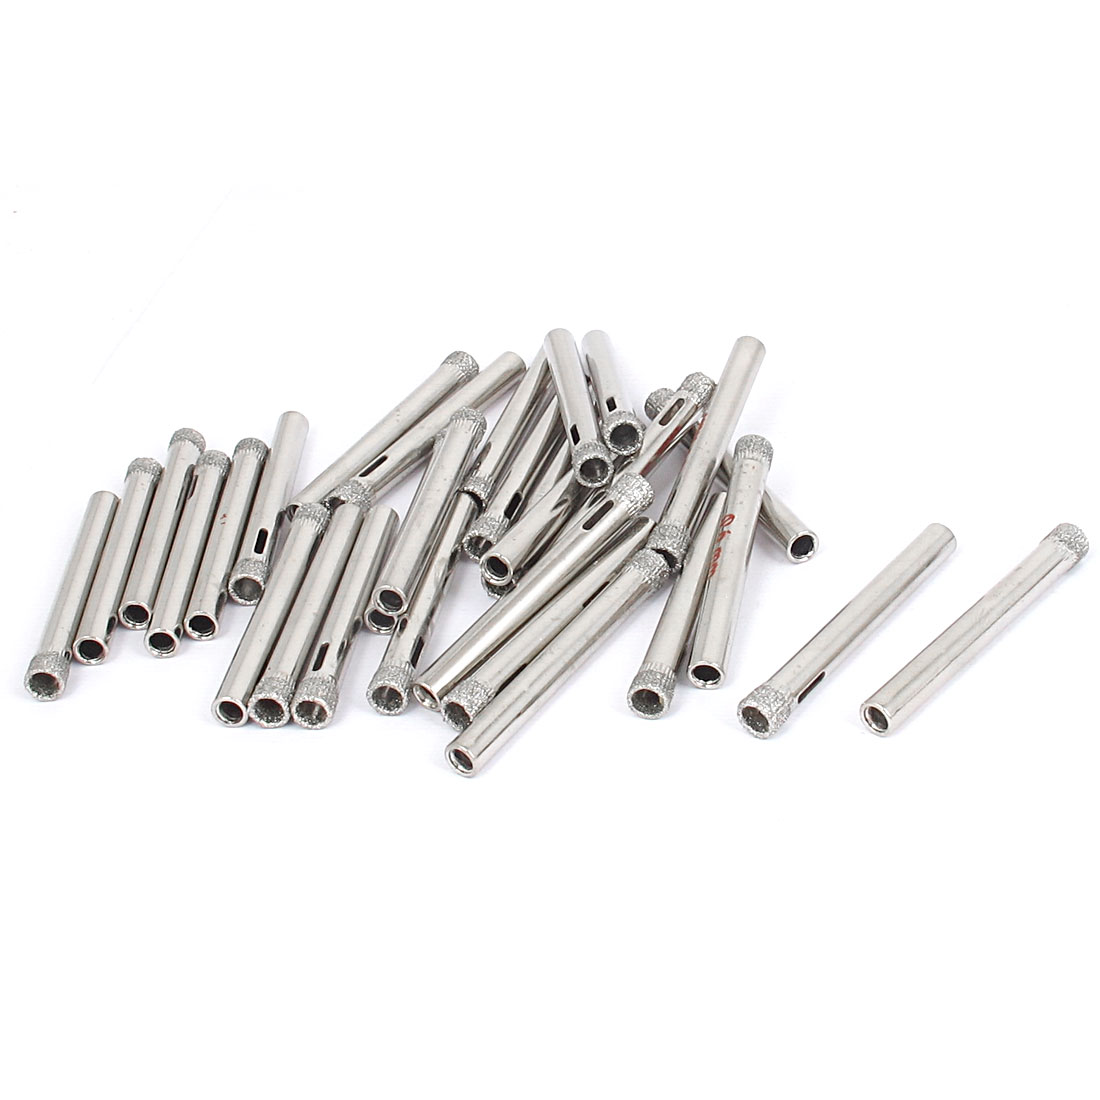 6mm Diamond Coated Core Round Shank Drill Bits Tile Marble Glass Hole Saws 30pcs